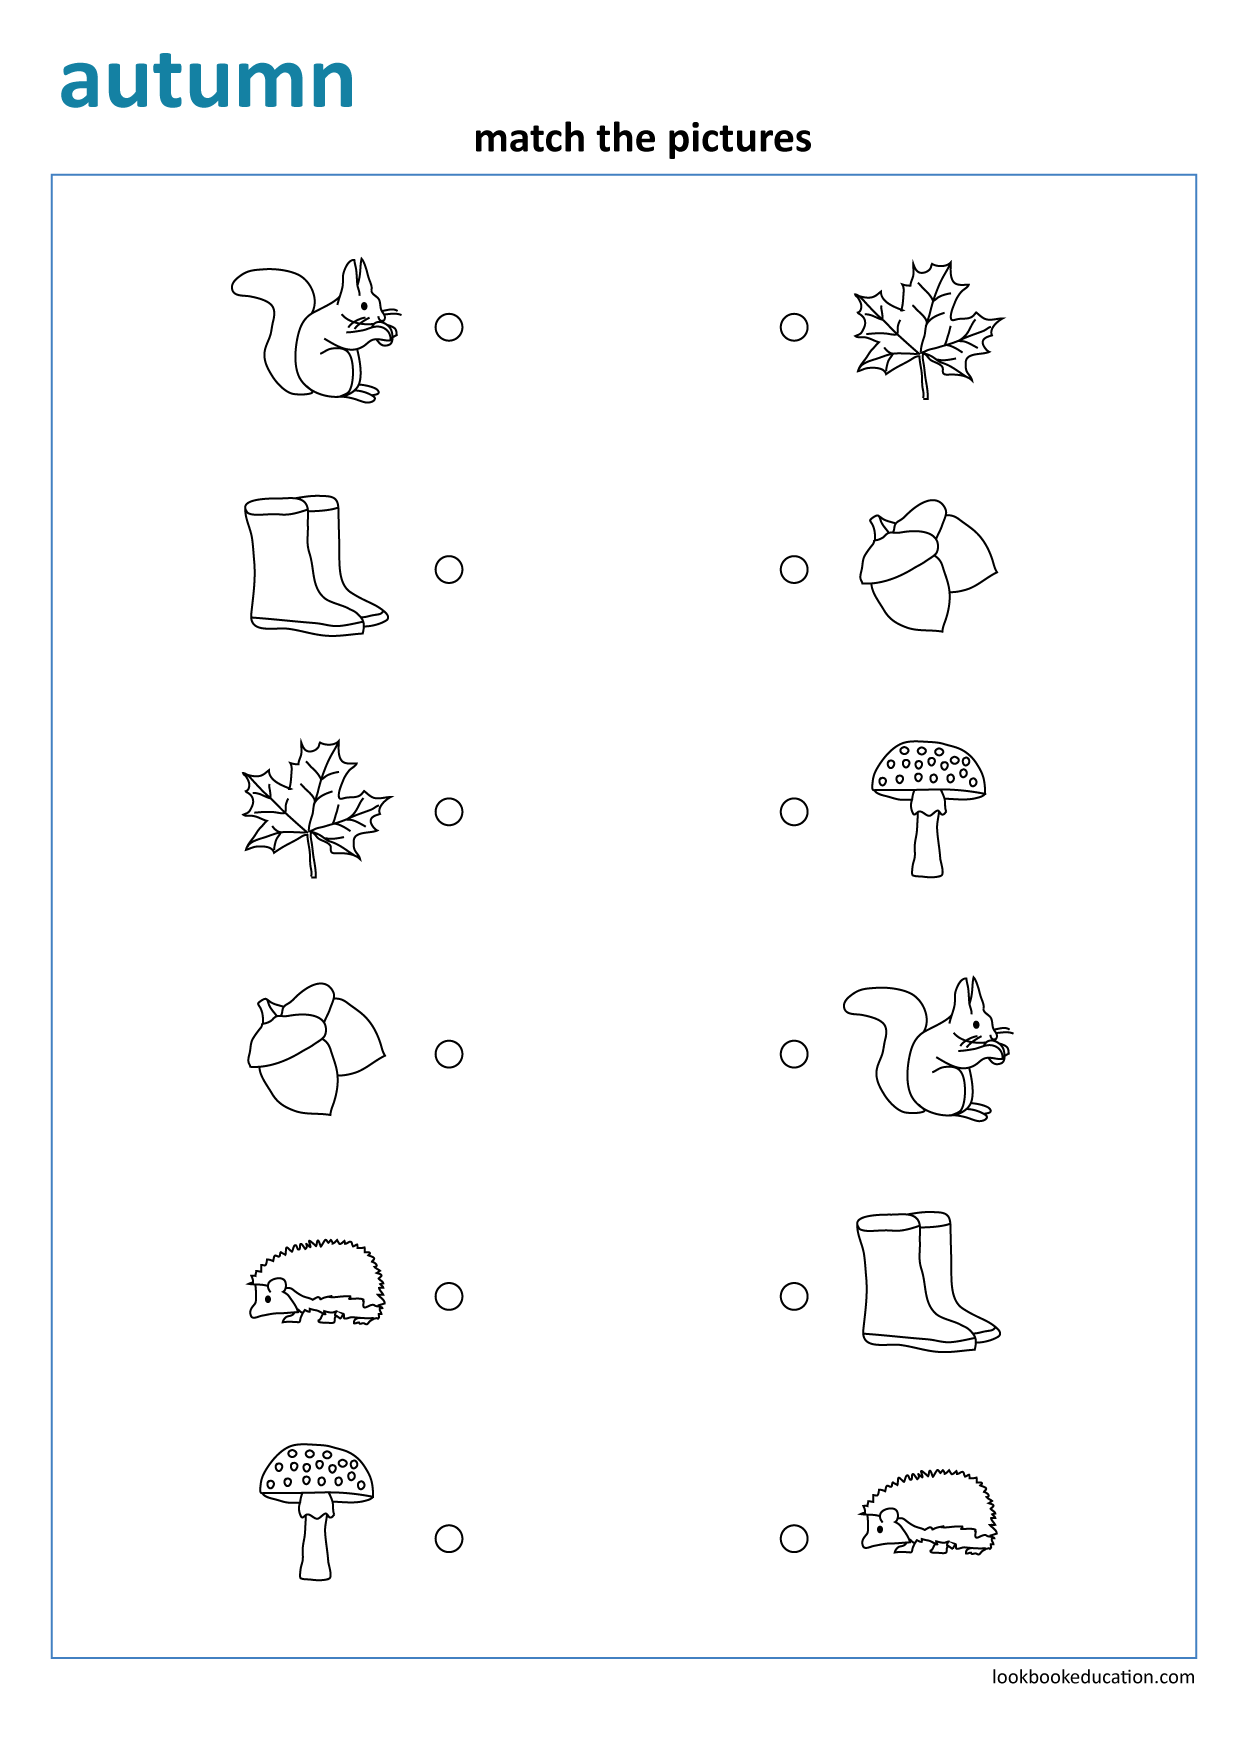 Worksheet Matching Autumn In